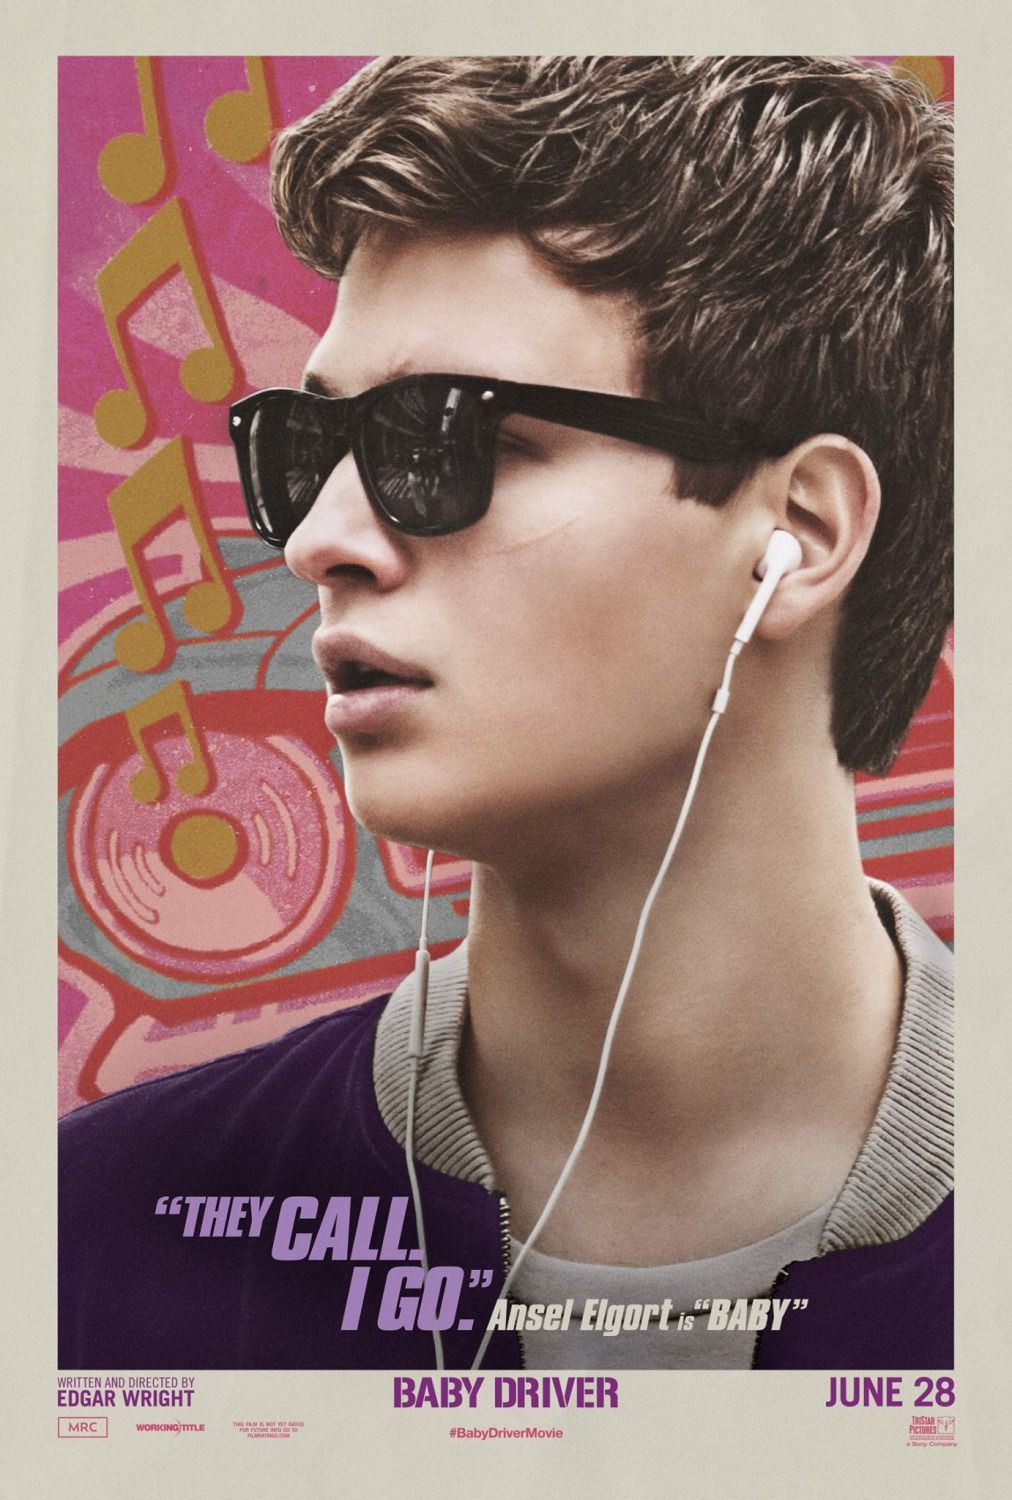 Baby Driver - Ansel Elgort is Baby